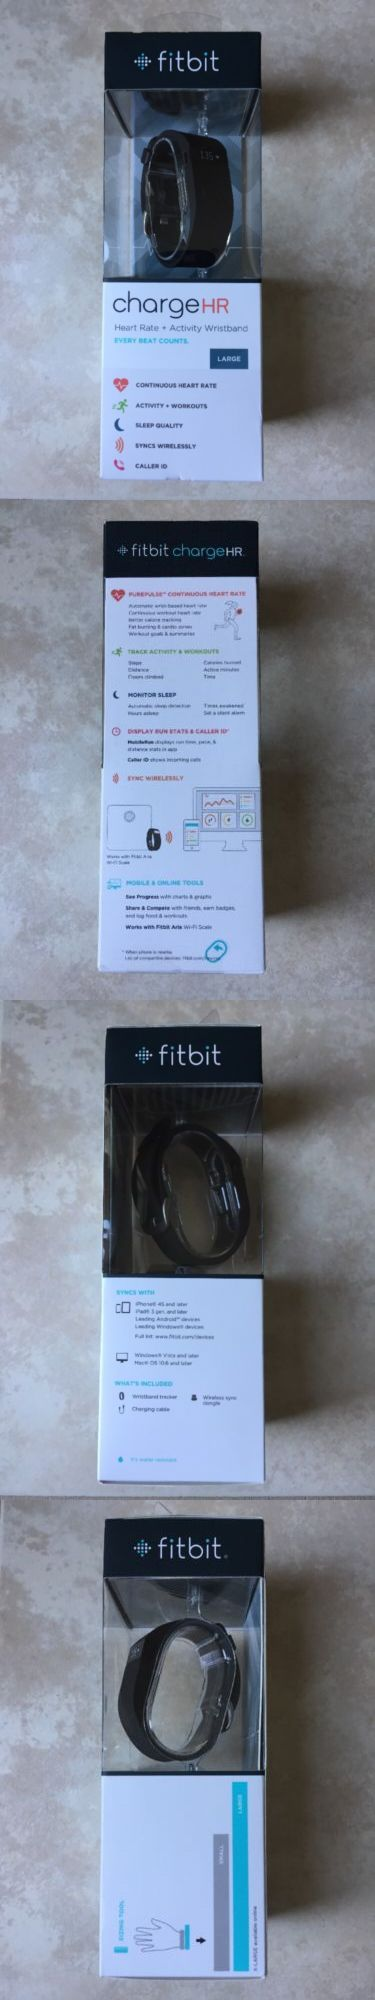 Activity Trackers 179798: *New* Fitbit Charge Hr Heart Rate Activity Sleep Wristband Monitor Large Black -> BUY IT NOW ONLY: $72.88 on eBay!